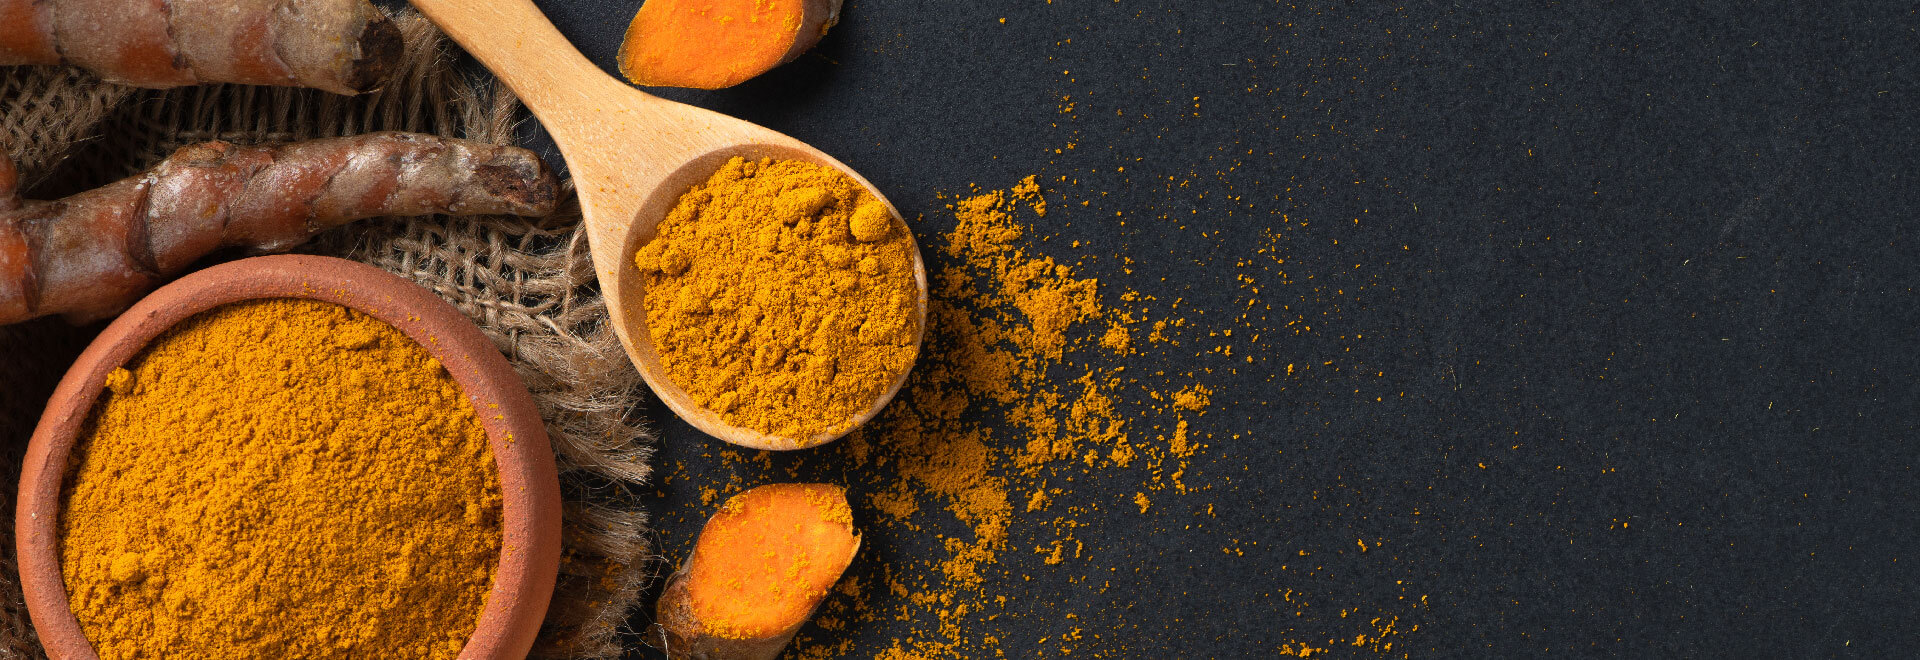 Be healthier with turmeric